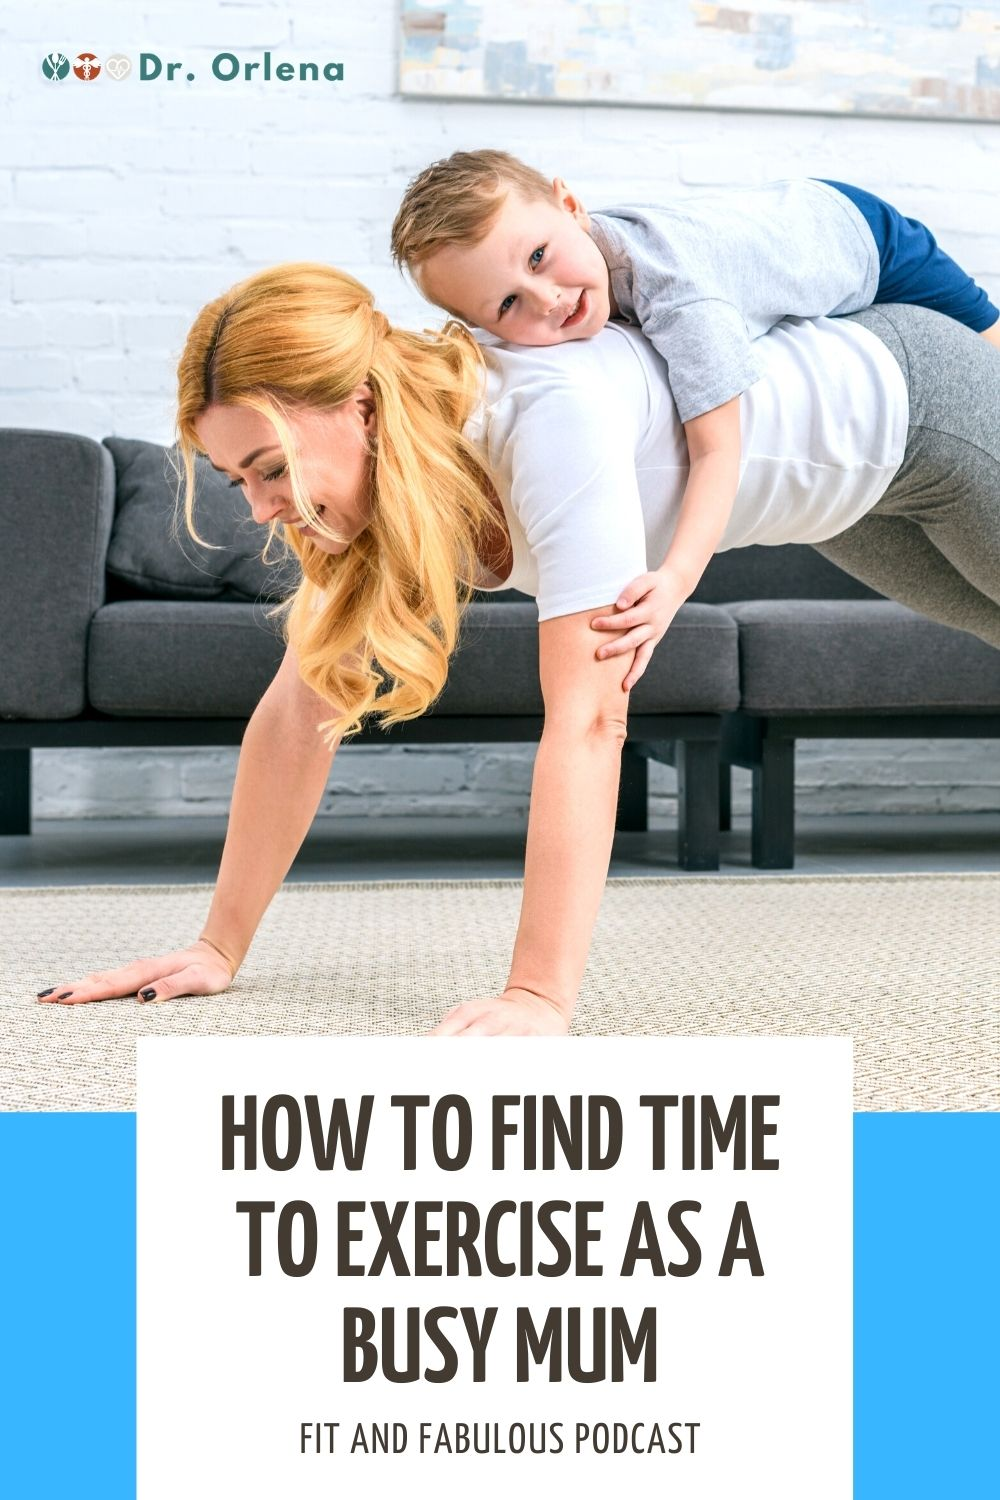 A woman doing yoga poses with her son on her back #momexercise #momhealth #activemom #healthymom #healthyliving